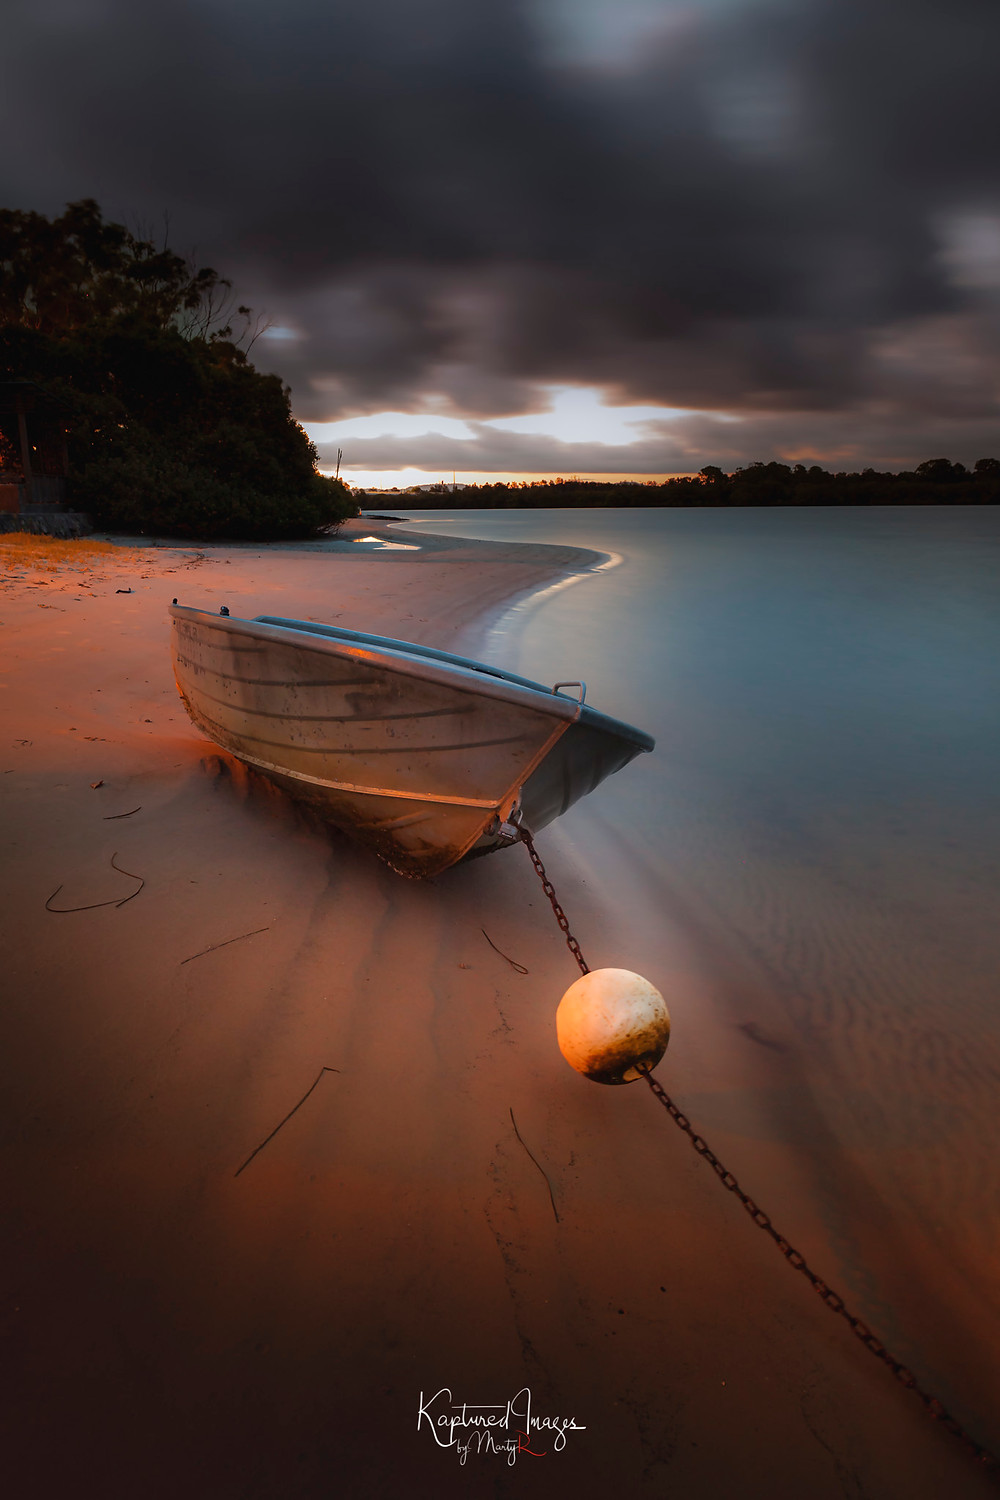 A small dinghy on the banks of the Maroochy River